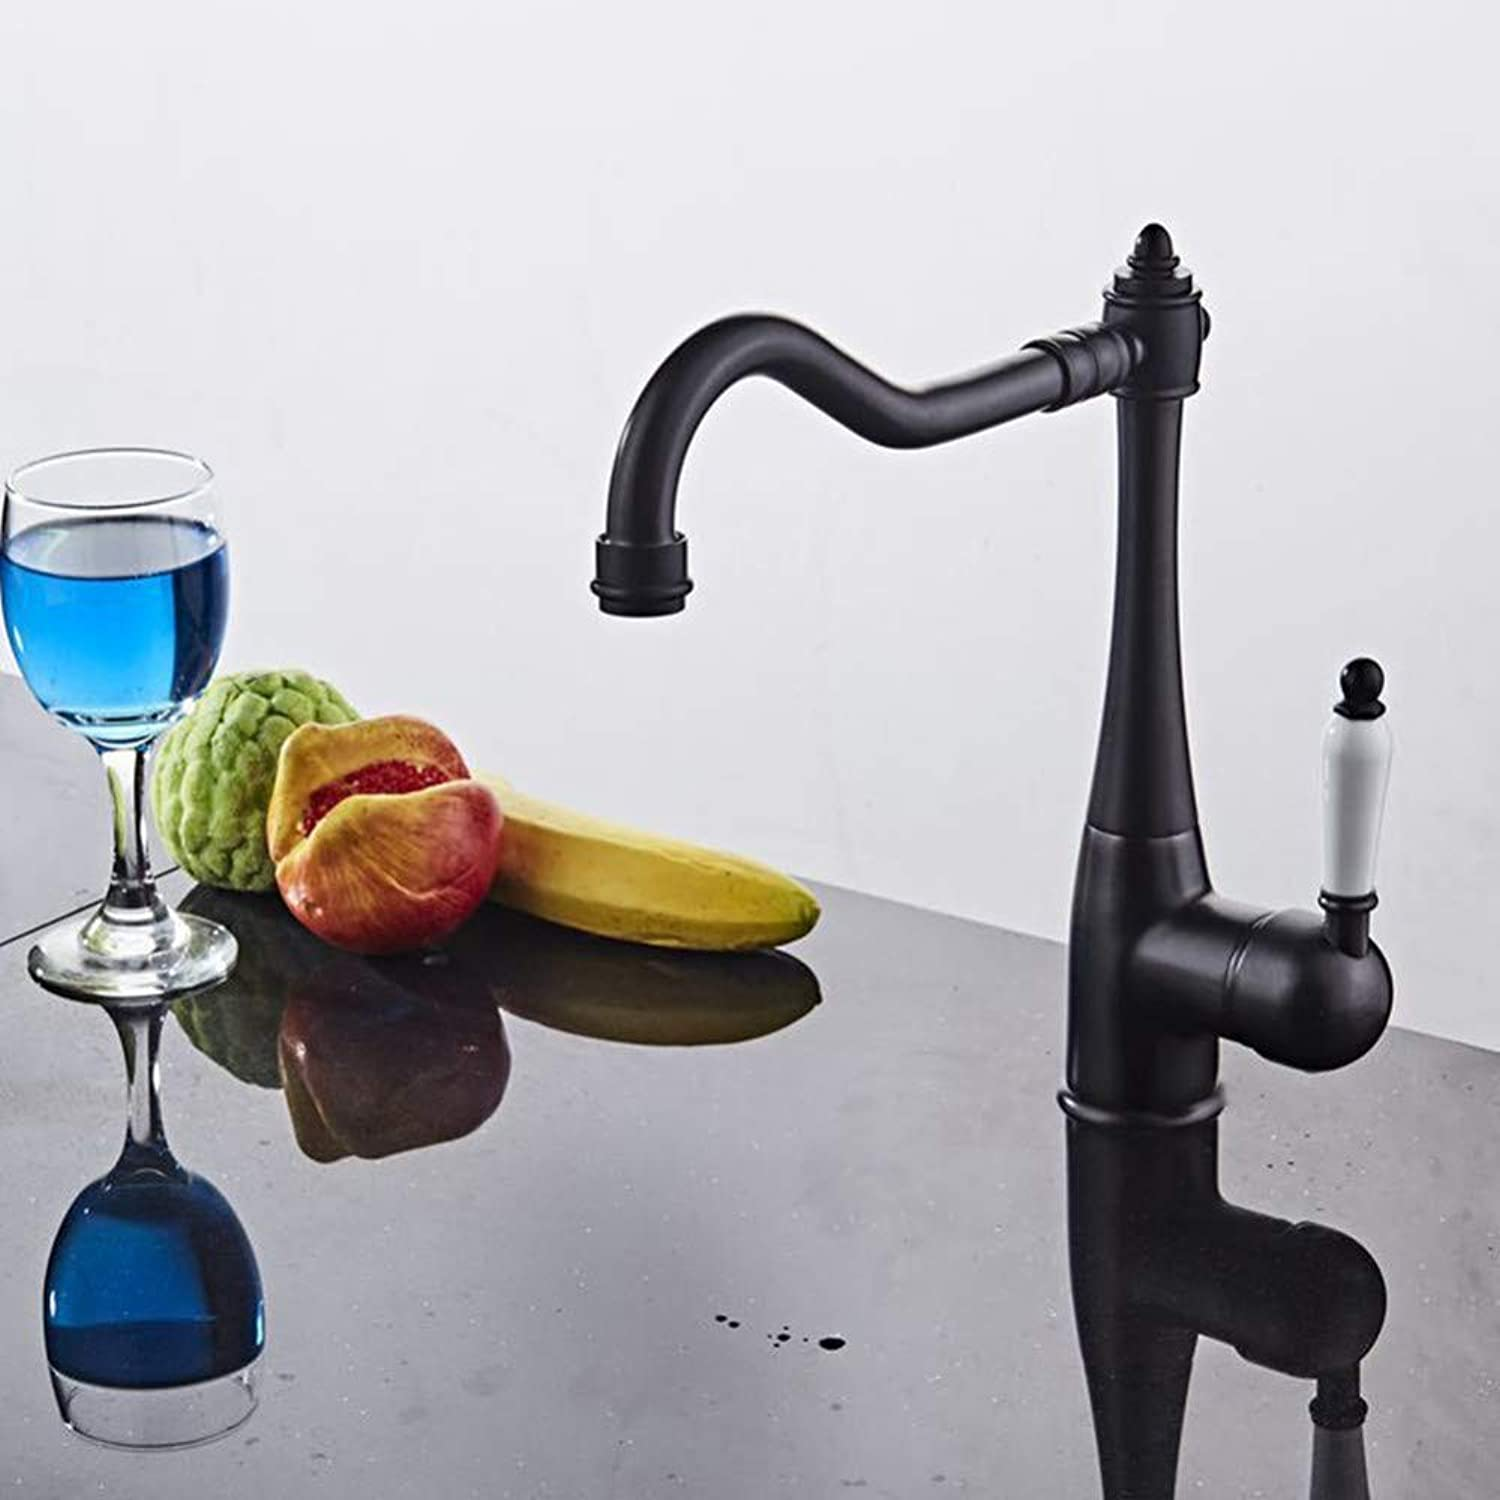 360° redating Faucet Retro Faucetkitchen Sink Basin Mixer Tap Kitchen Electroplating redatable Faucet